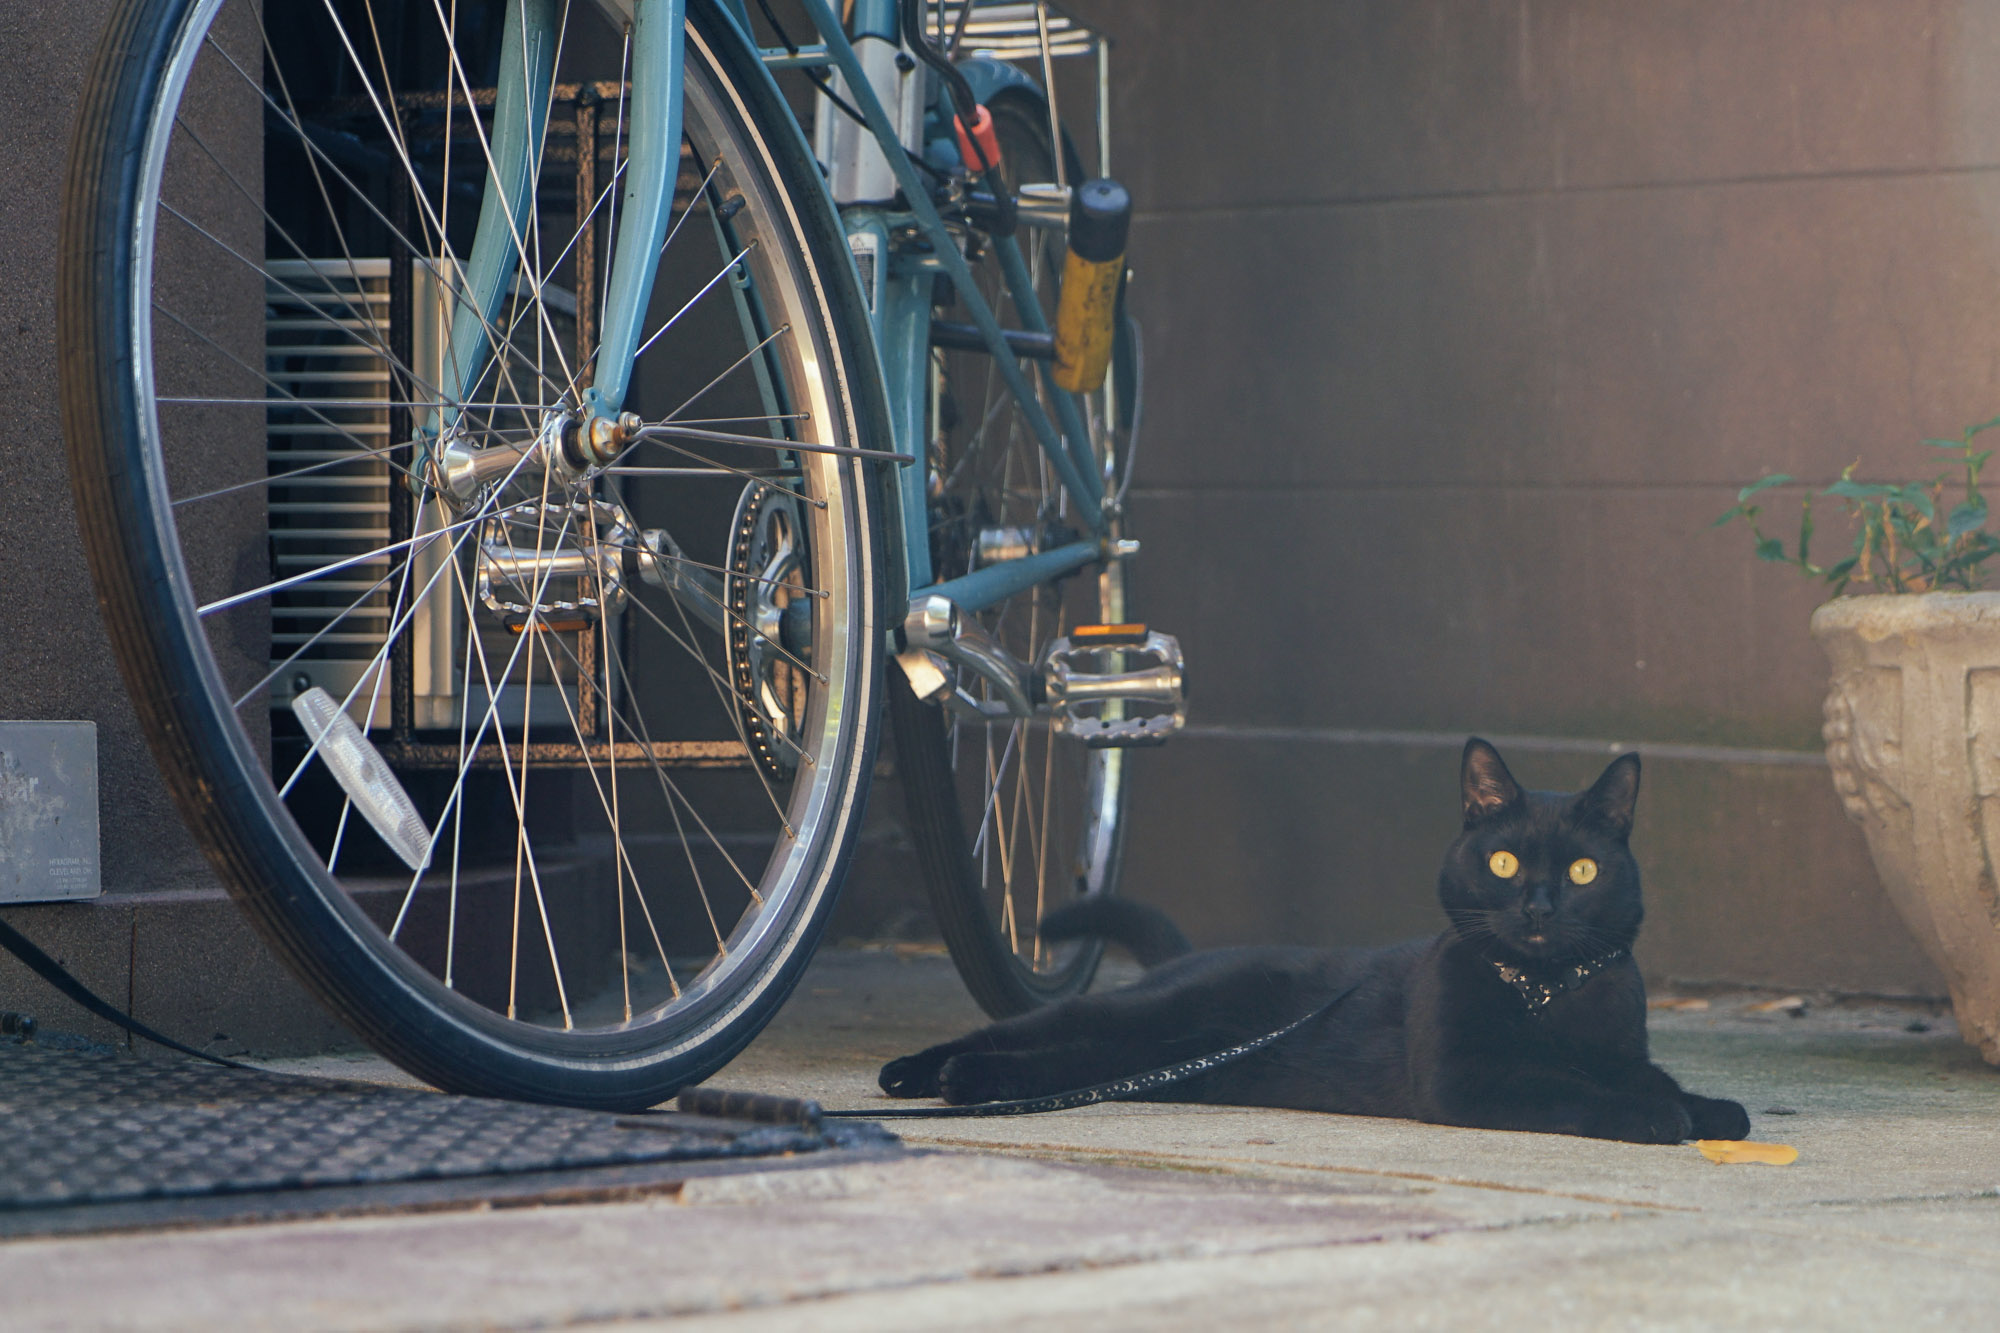 black cat beside bicycle